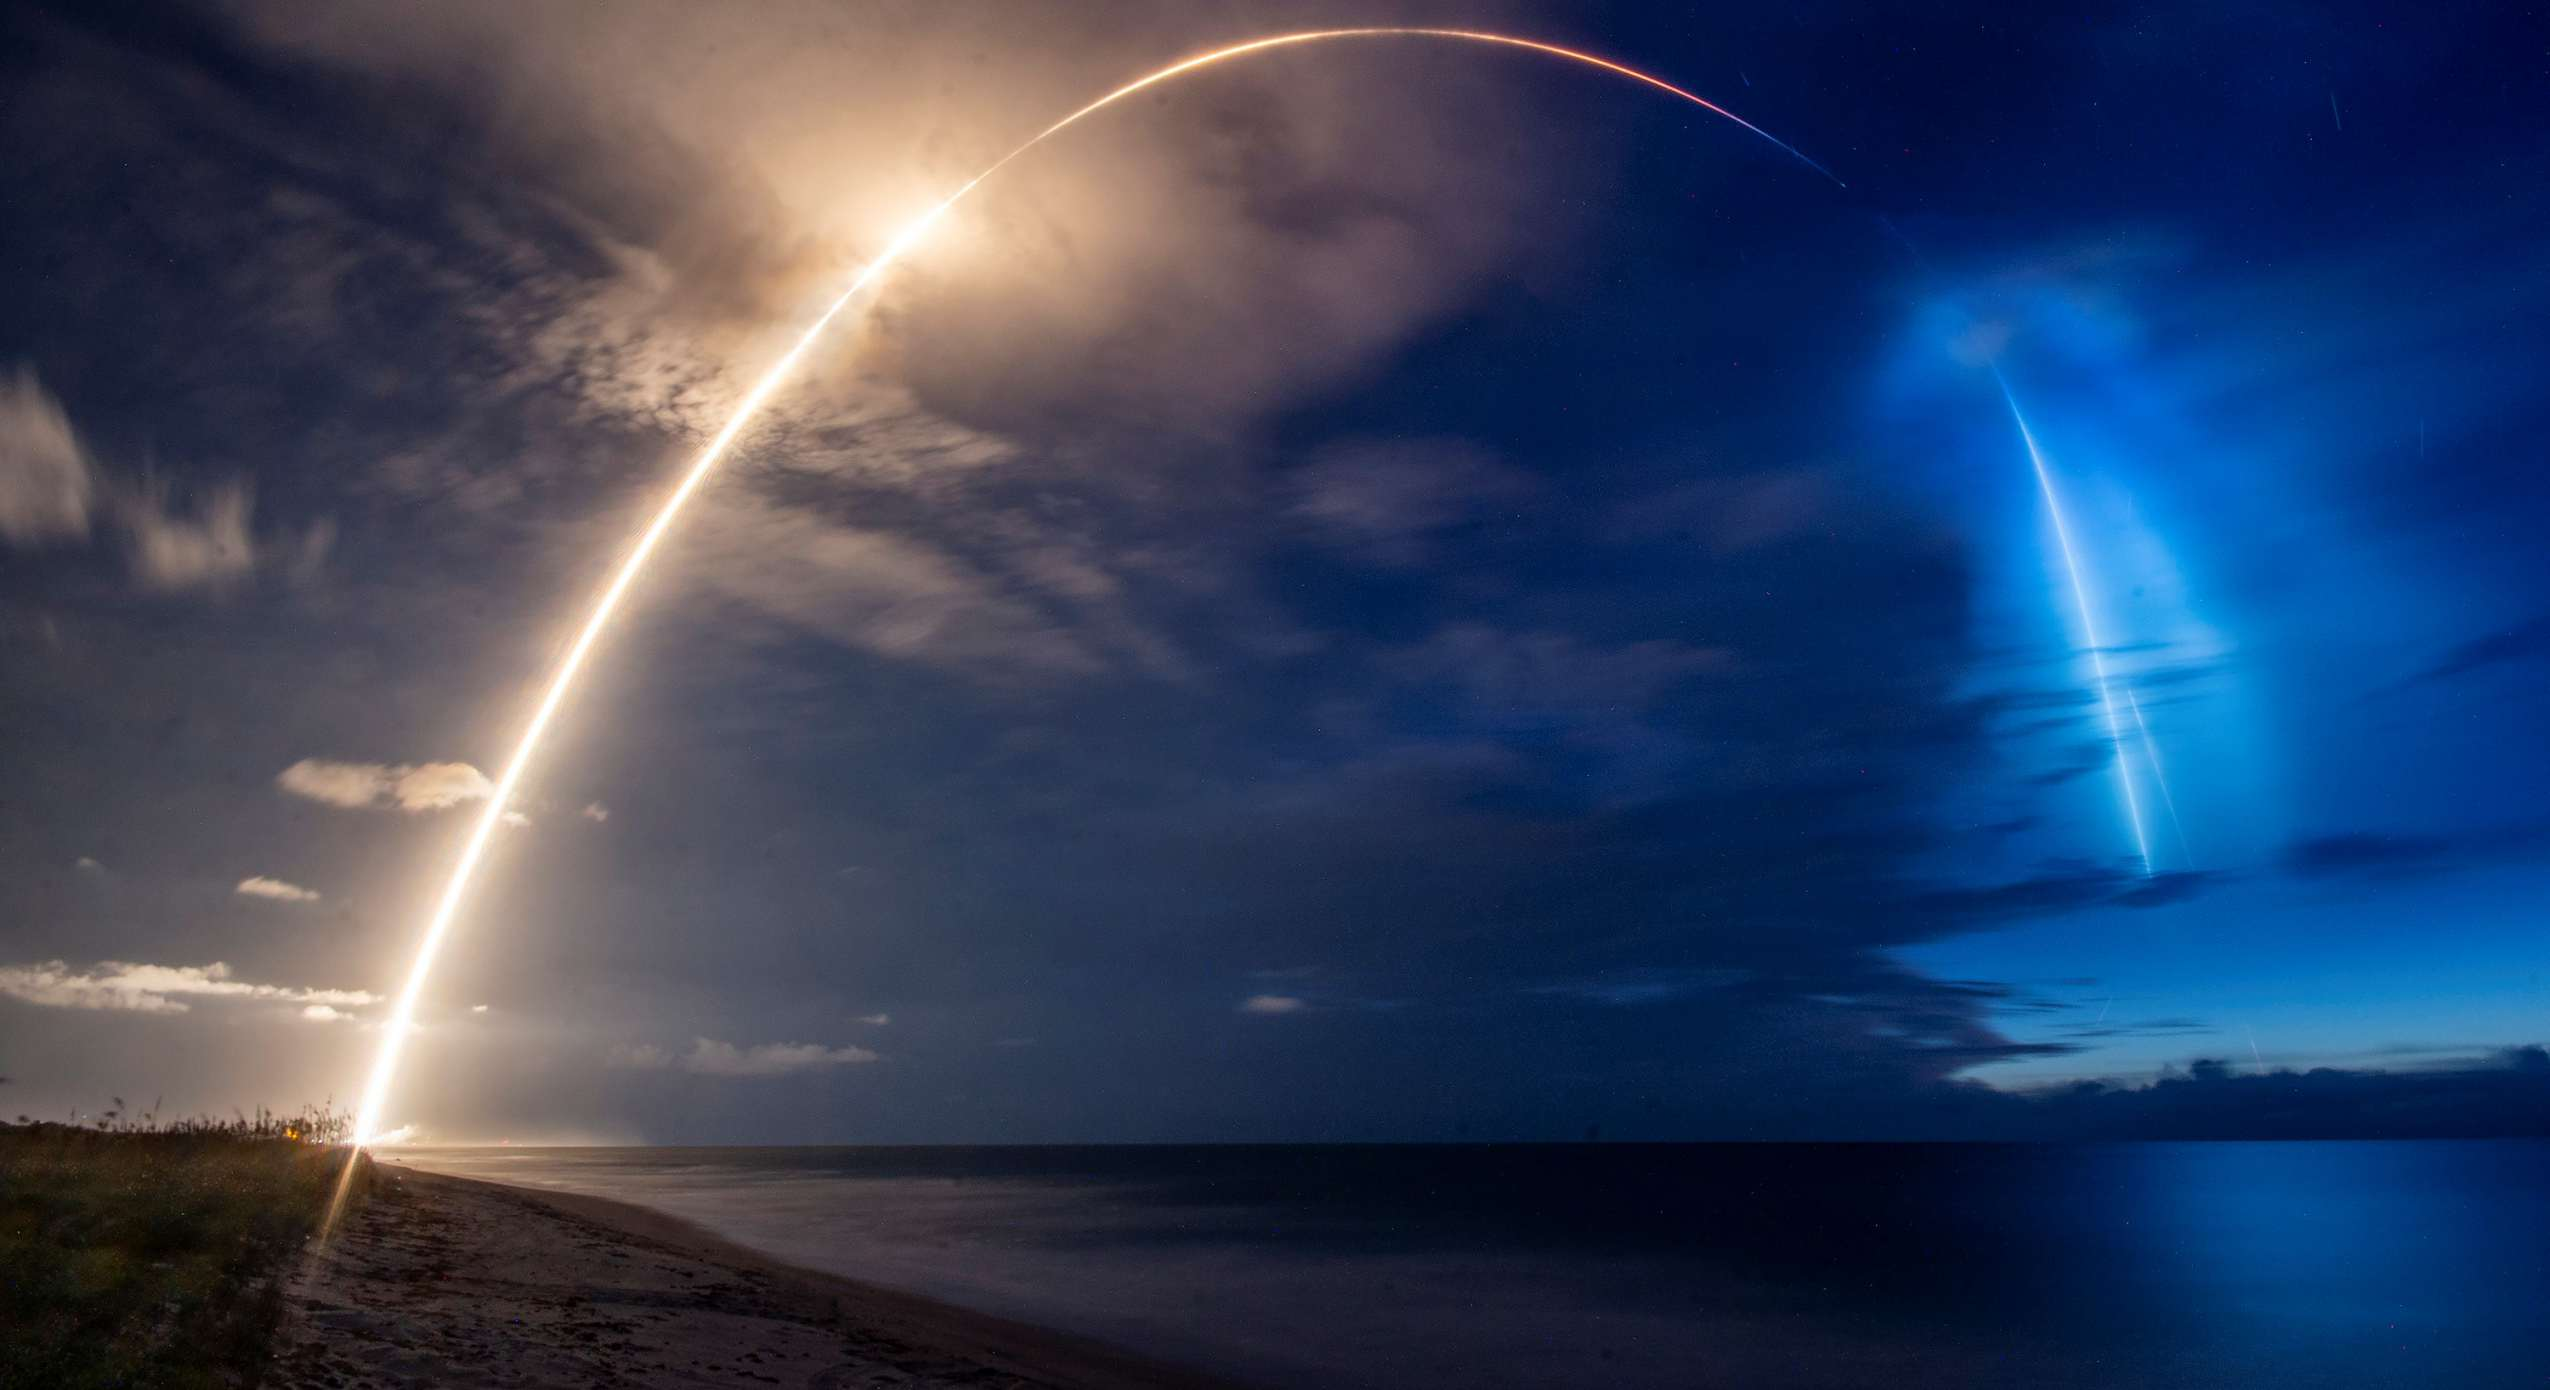 Starlink V1 L8 Falcon 9 B1059 061320 (SpaceX) launch 1 crop (c)